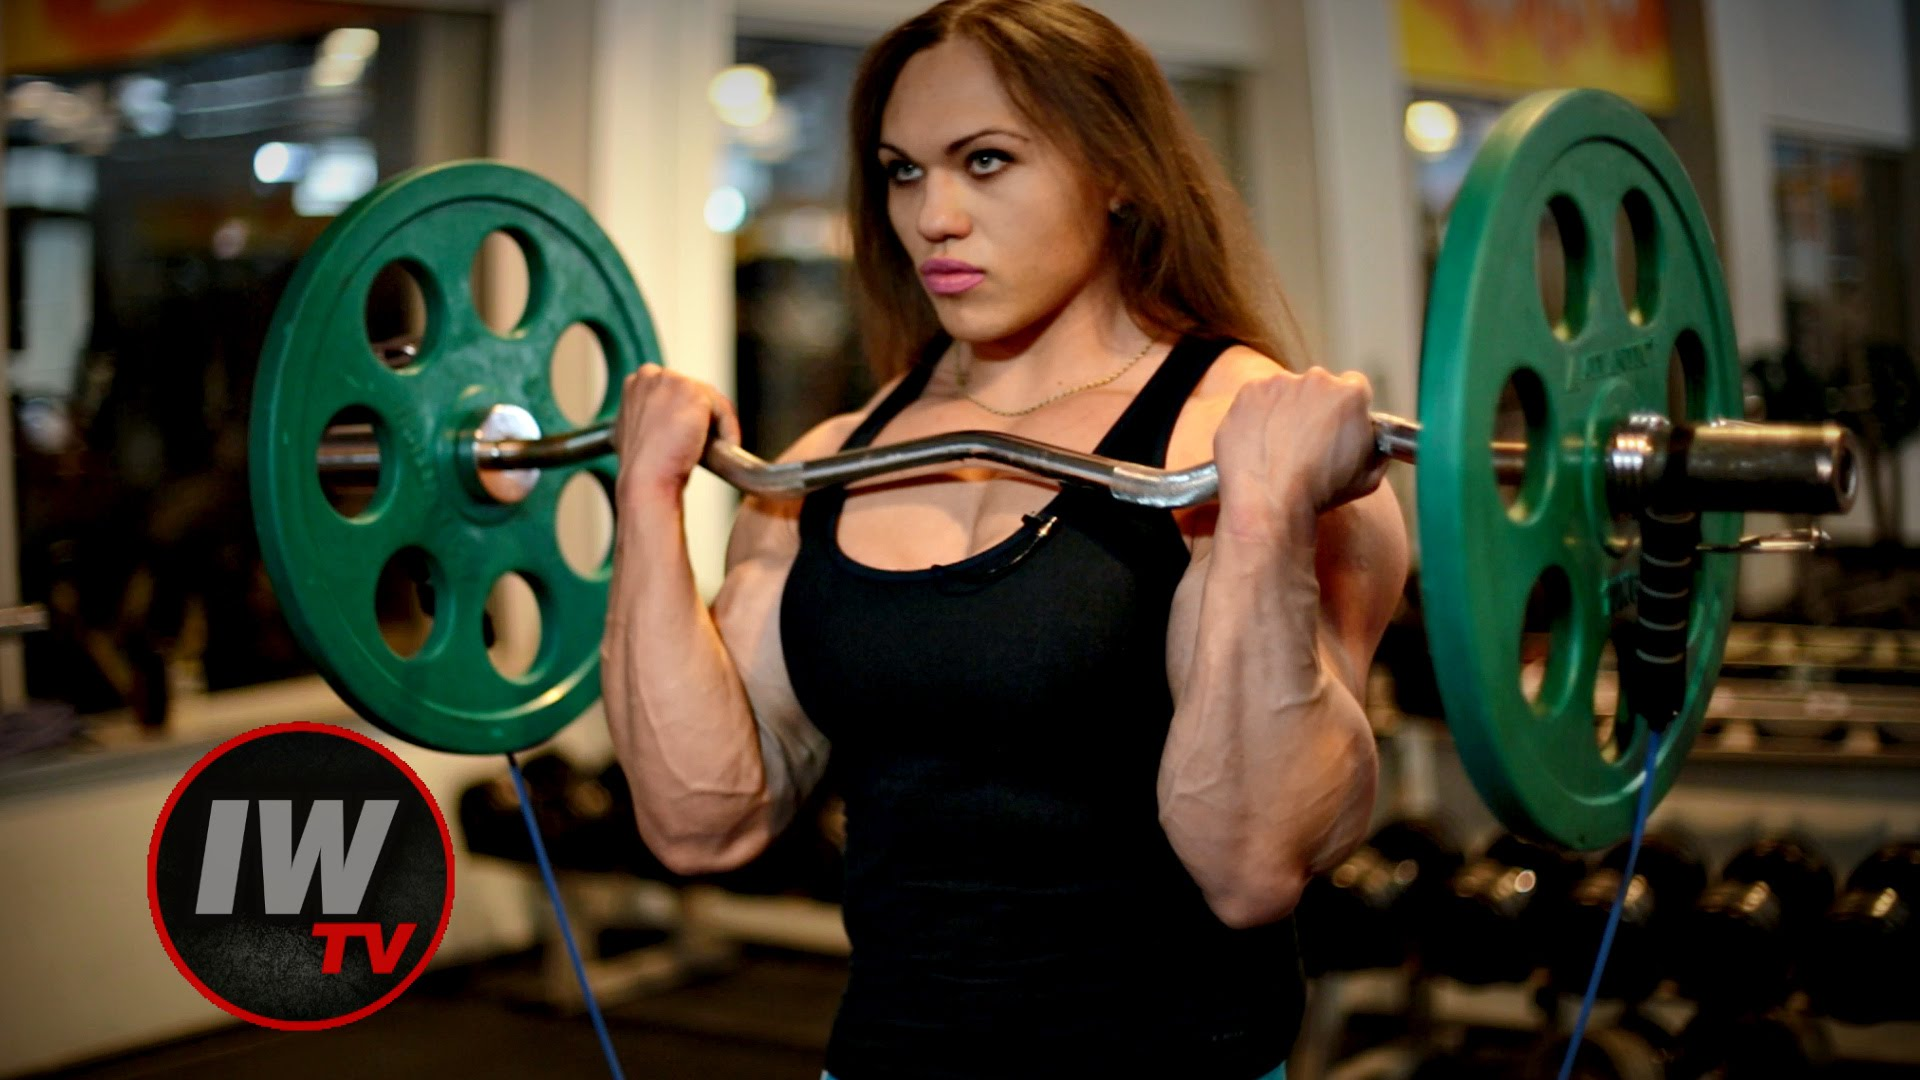 Natalya Trukhina – Arms Workout Part 2